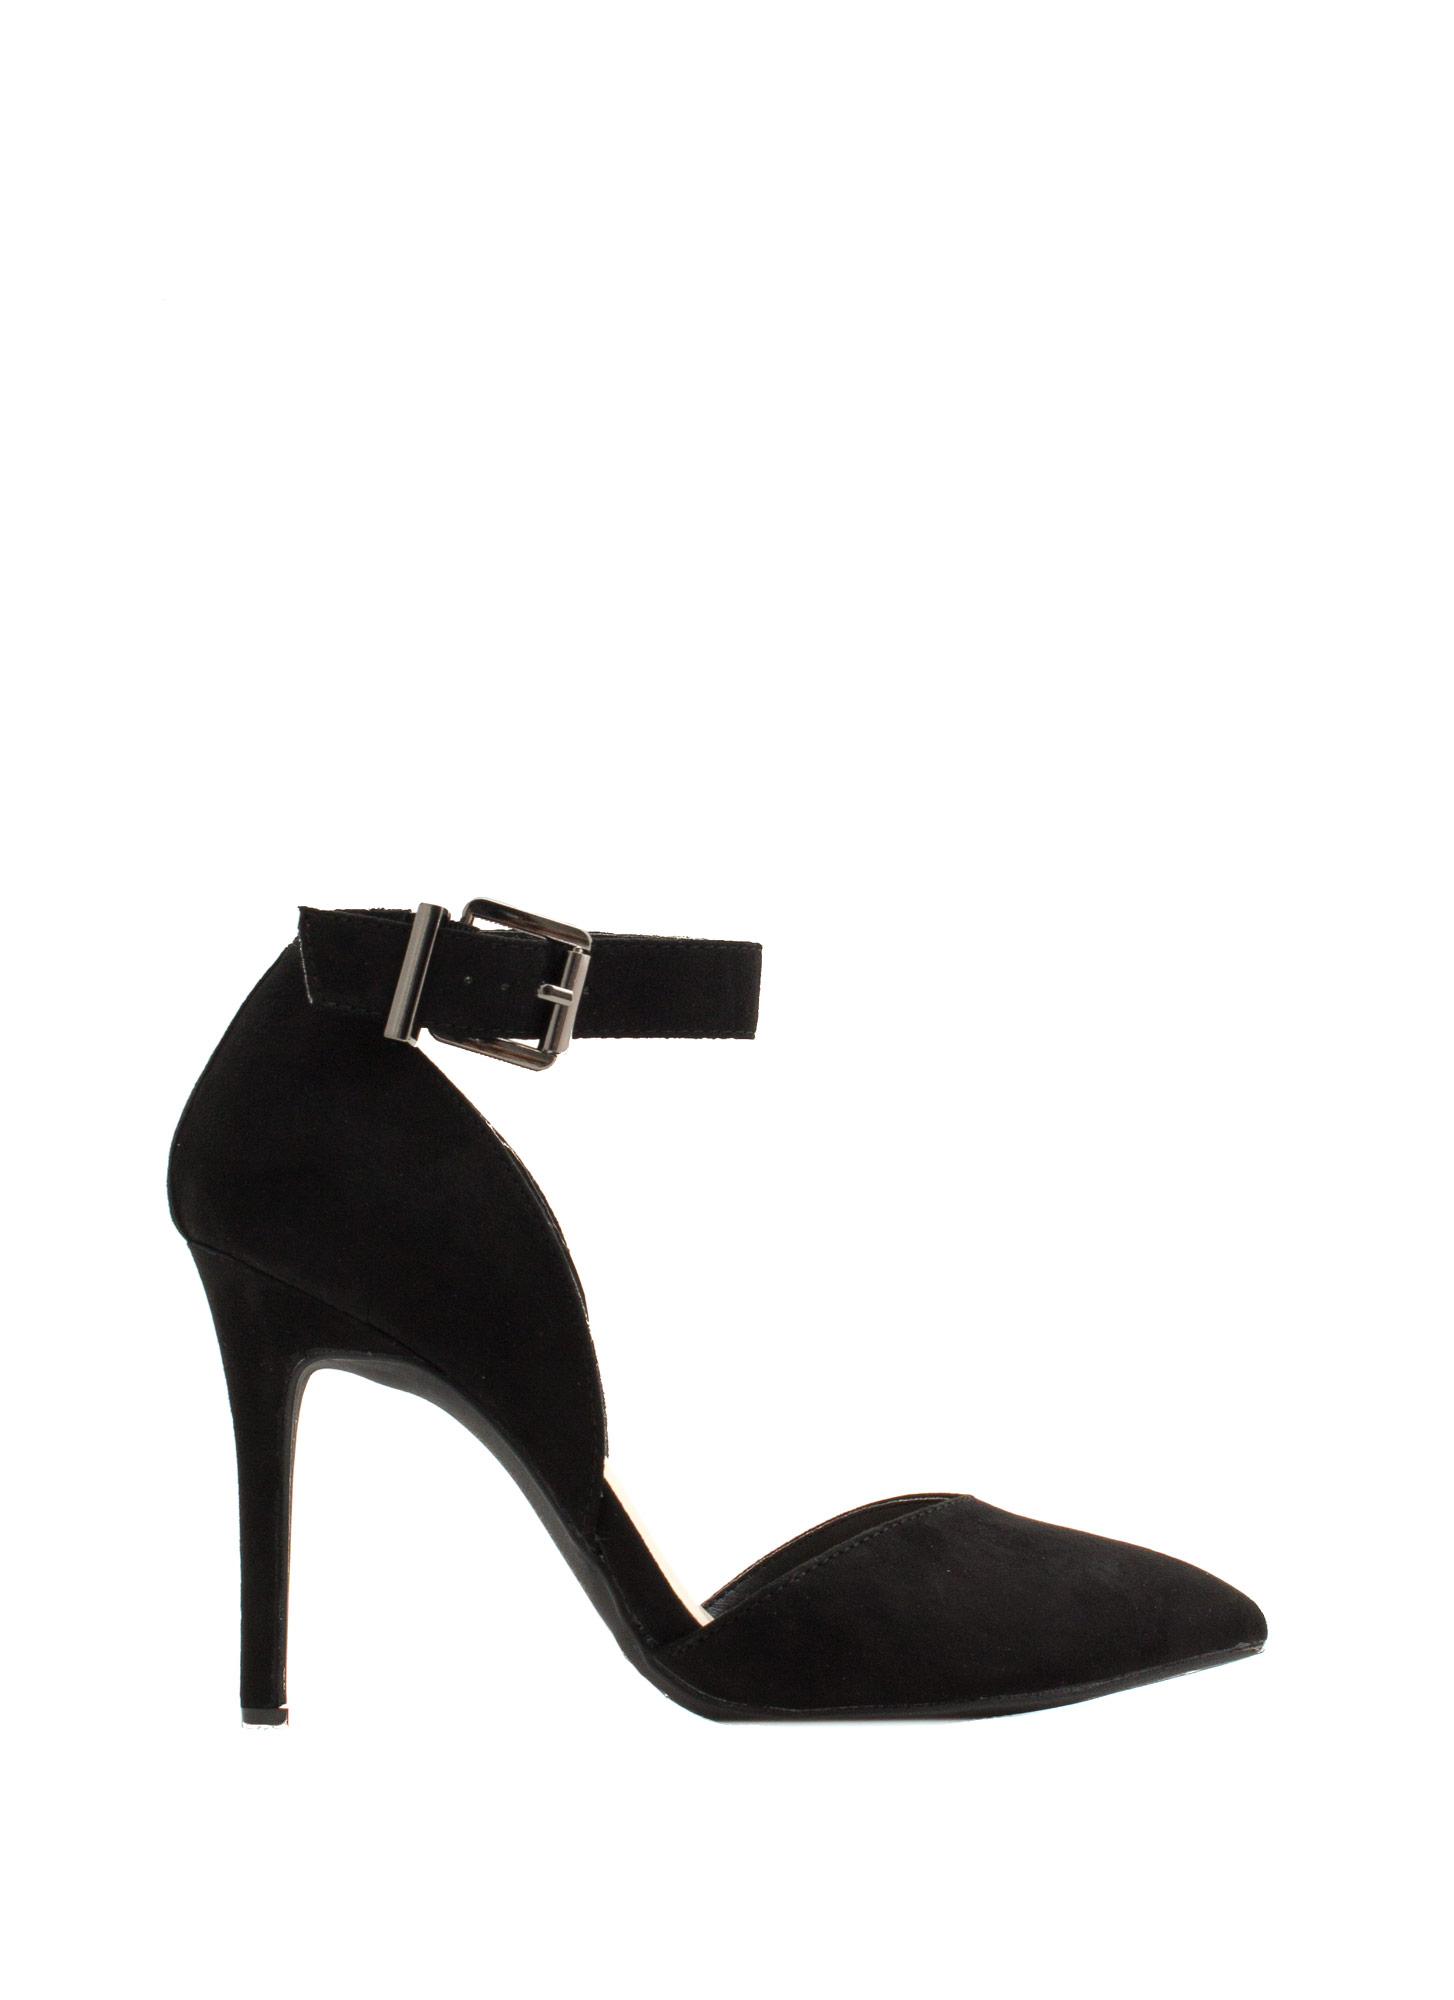 Fancy-Free Faux Suede Heels BLACK